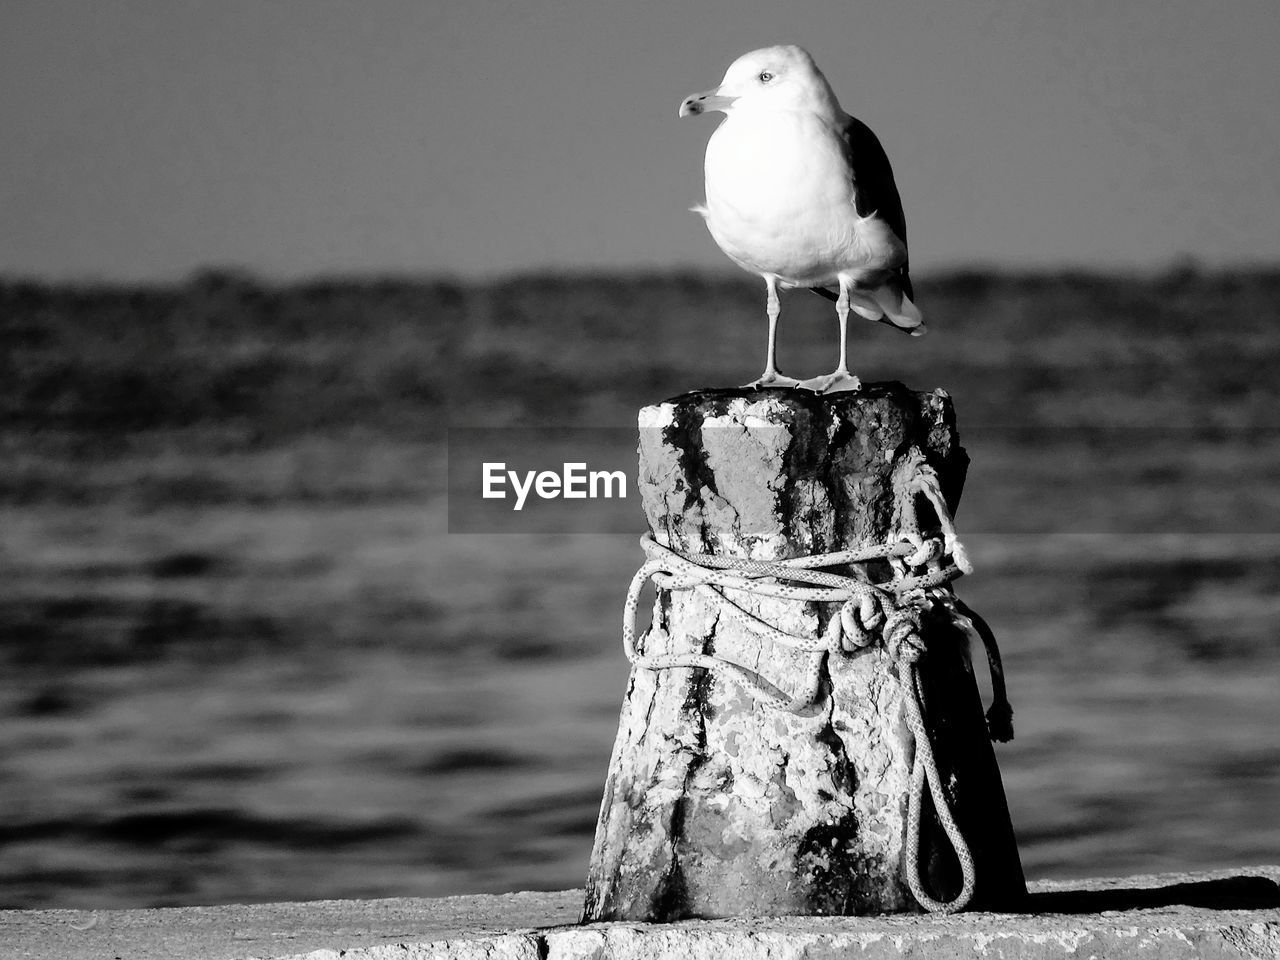 bird, vertebrate, animal, animal themes, perching, one animal, focus on foreground, water, animals in the wild, animal wildlife, post, day, seagull, no people, nature, wooden post, sea, outdoors, beach